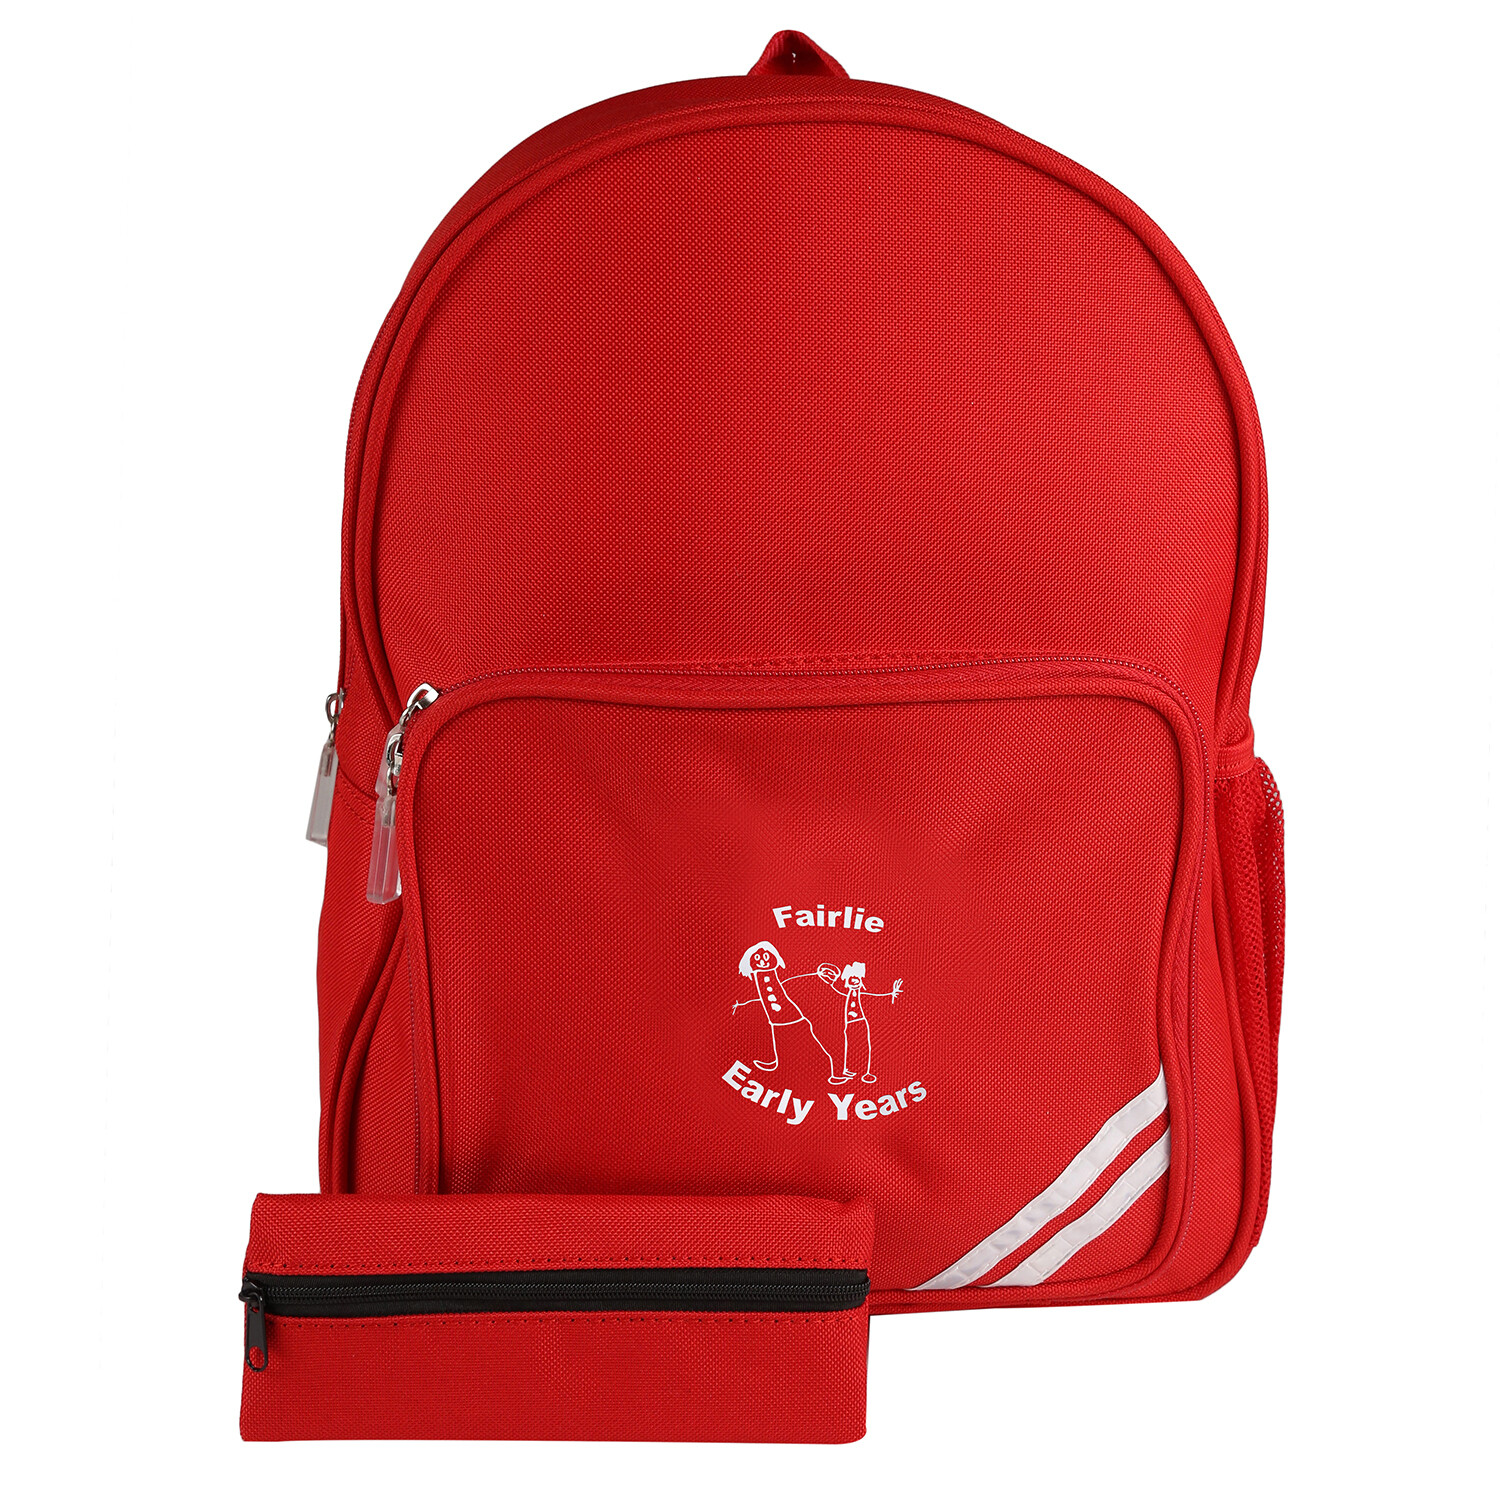 Fairlie Early Years Backpack